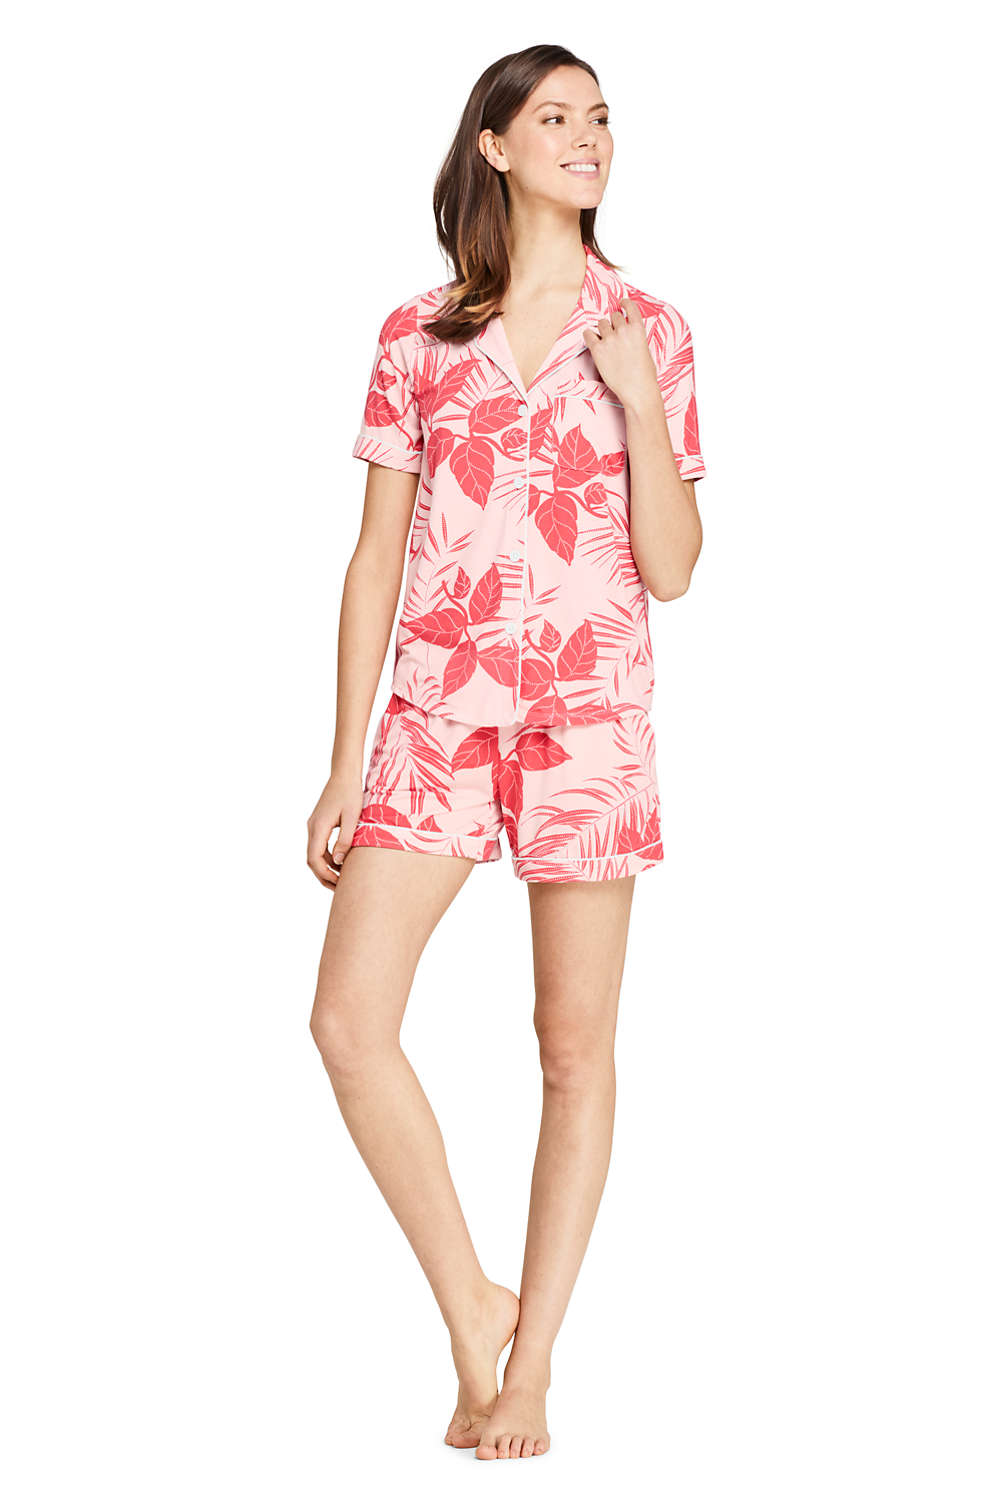 9c0183daffda8 Women's Short Sleep Set from Lands' End